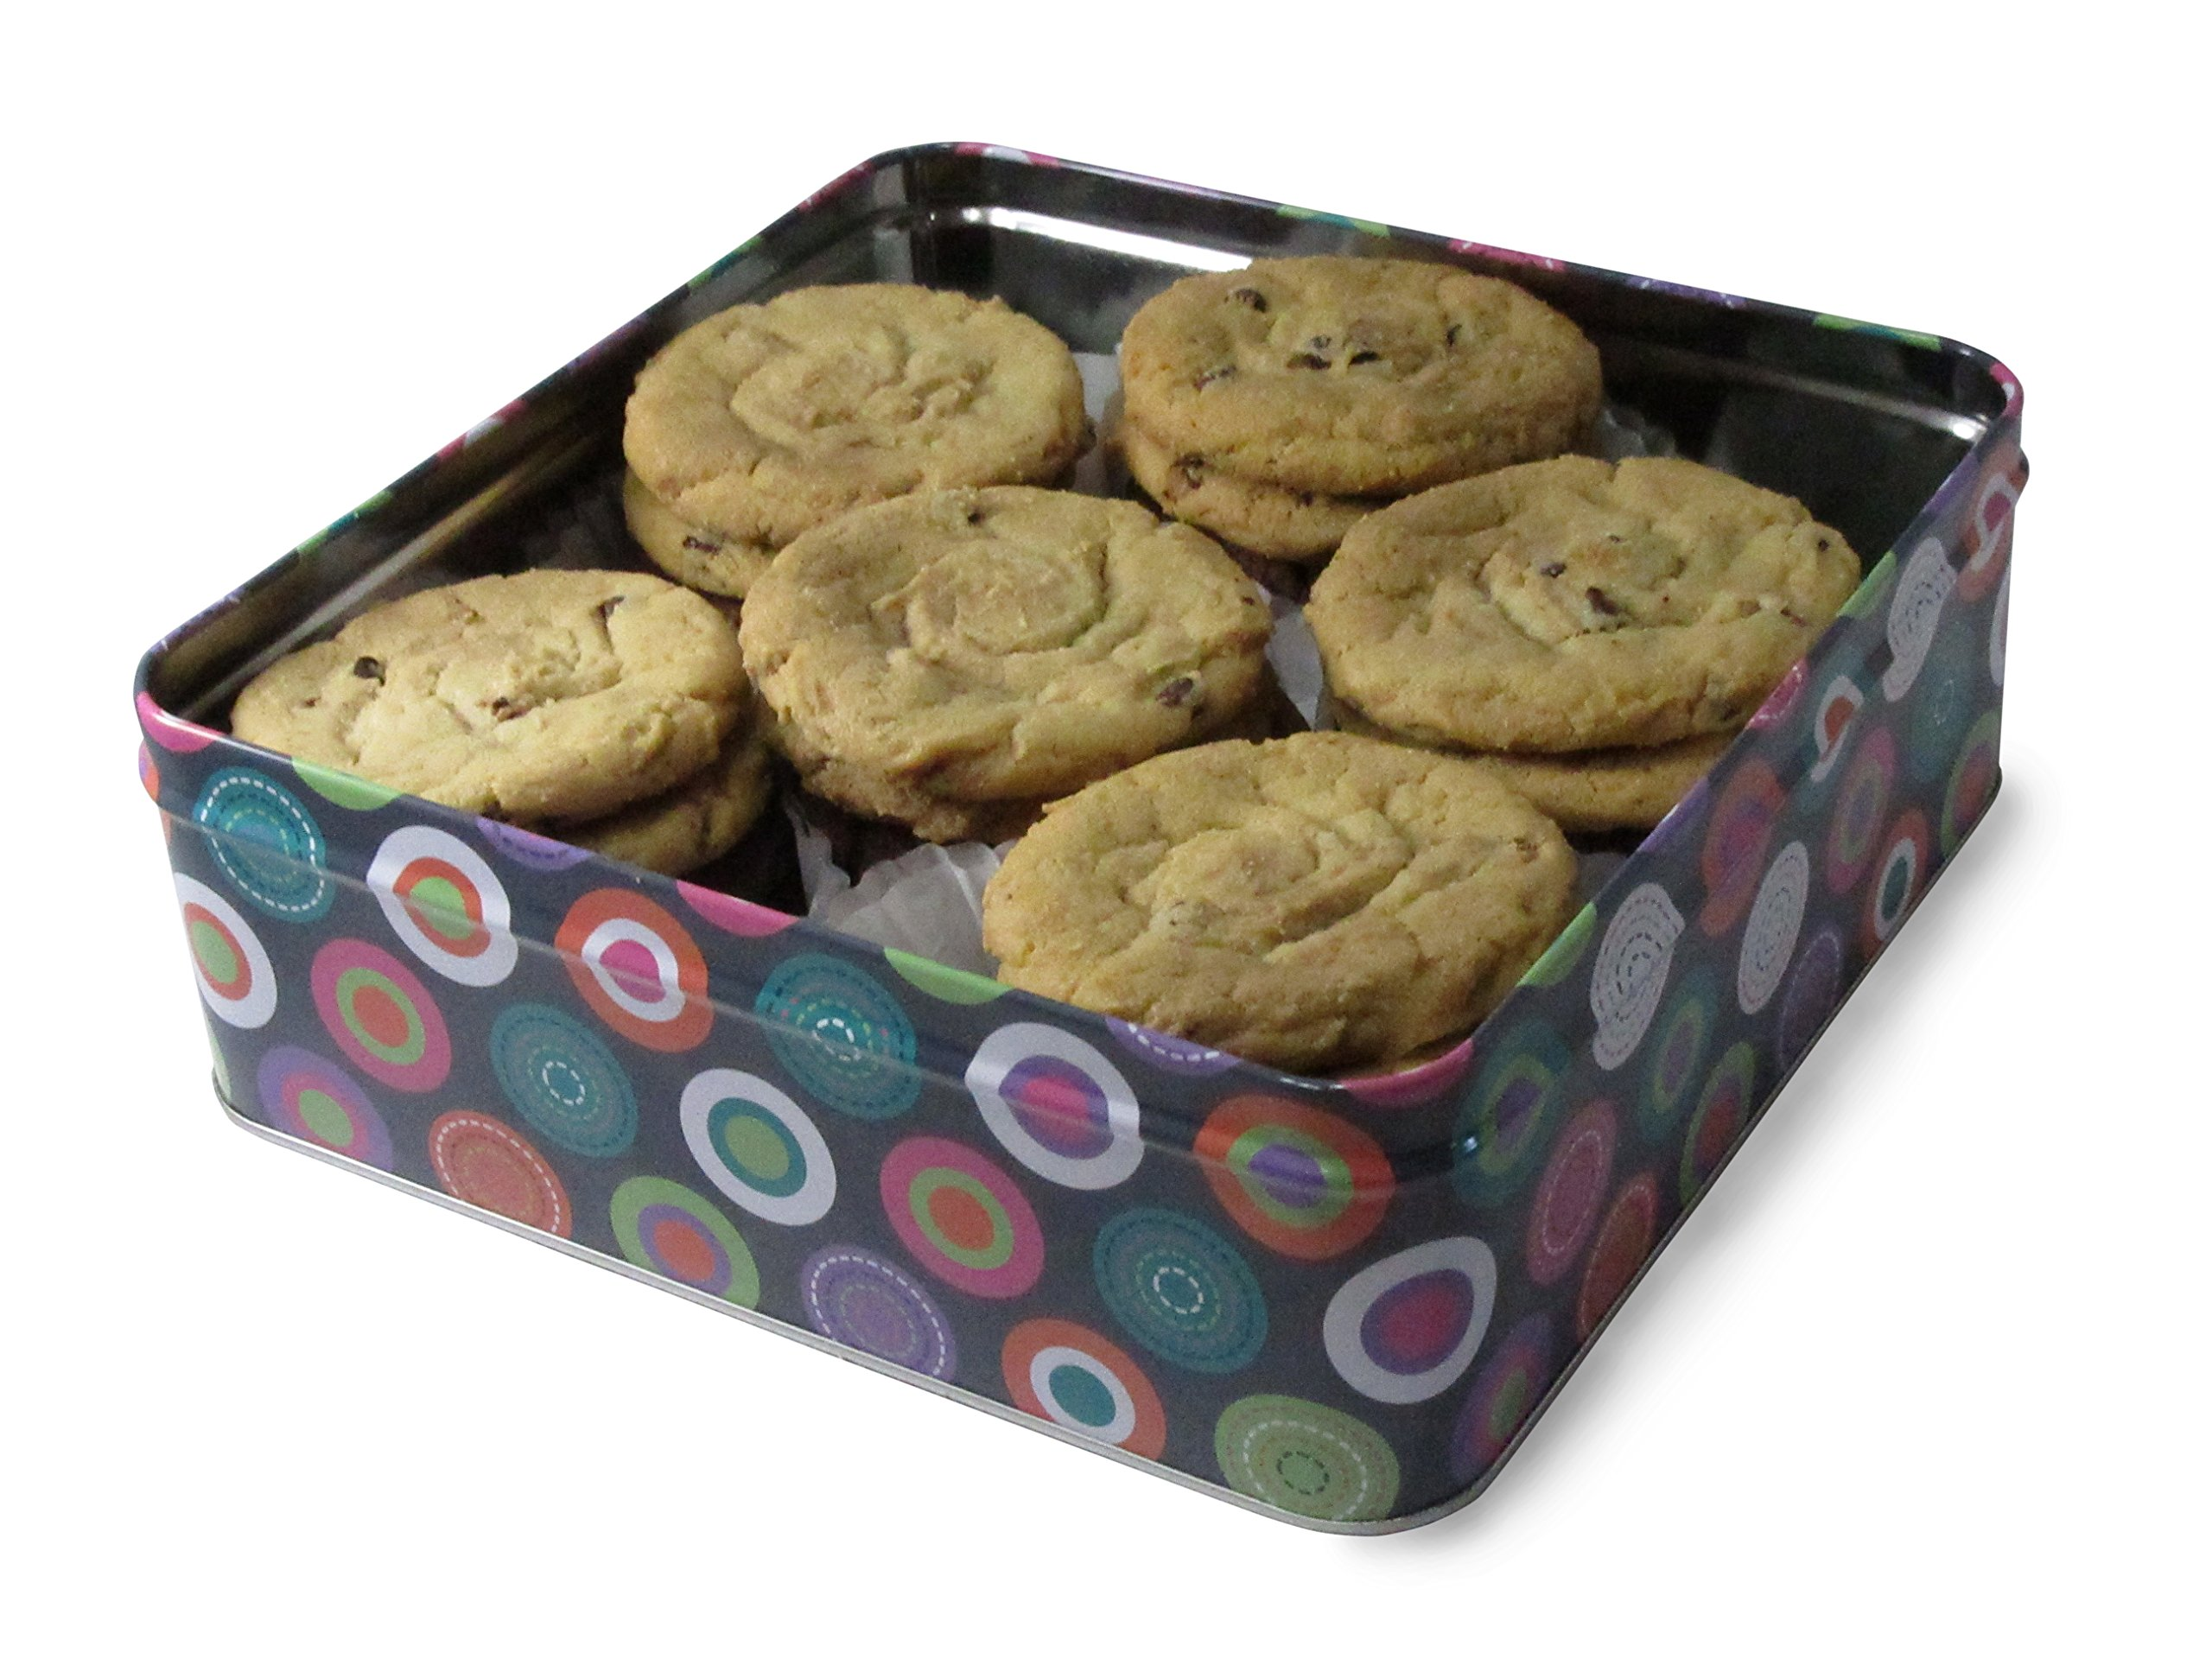 Fresh Baked Chocolate Chip Cookie Tins, Comes in Multiple Sizes | Gimmee Jimmy's Authentic Cookies-2 Pound Tin by Gimmee Jimmy's Cookies (Image #2)